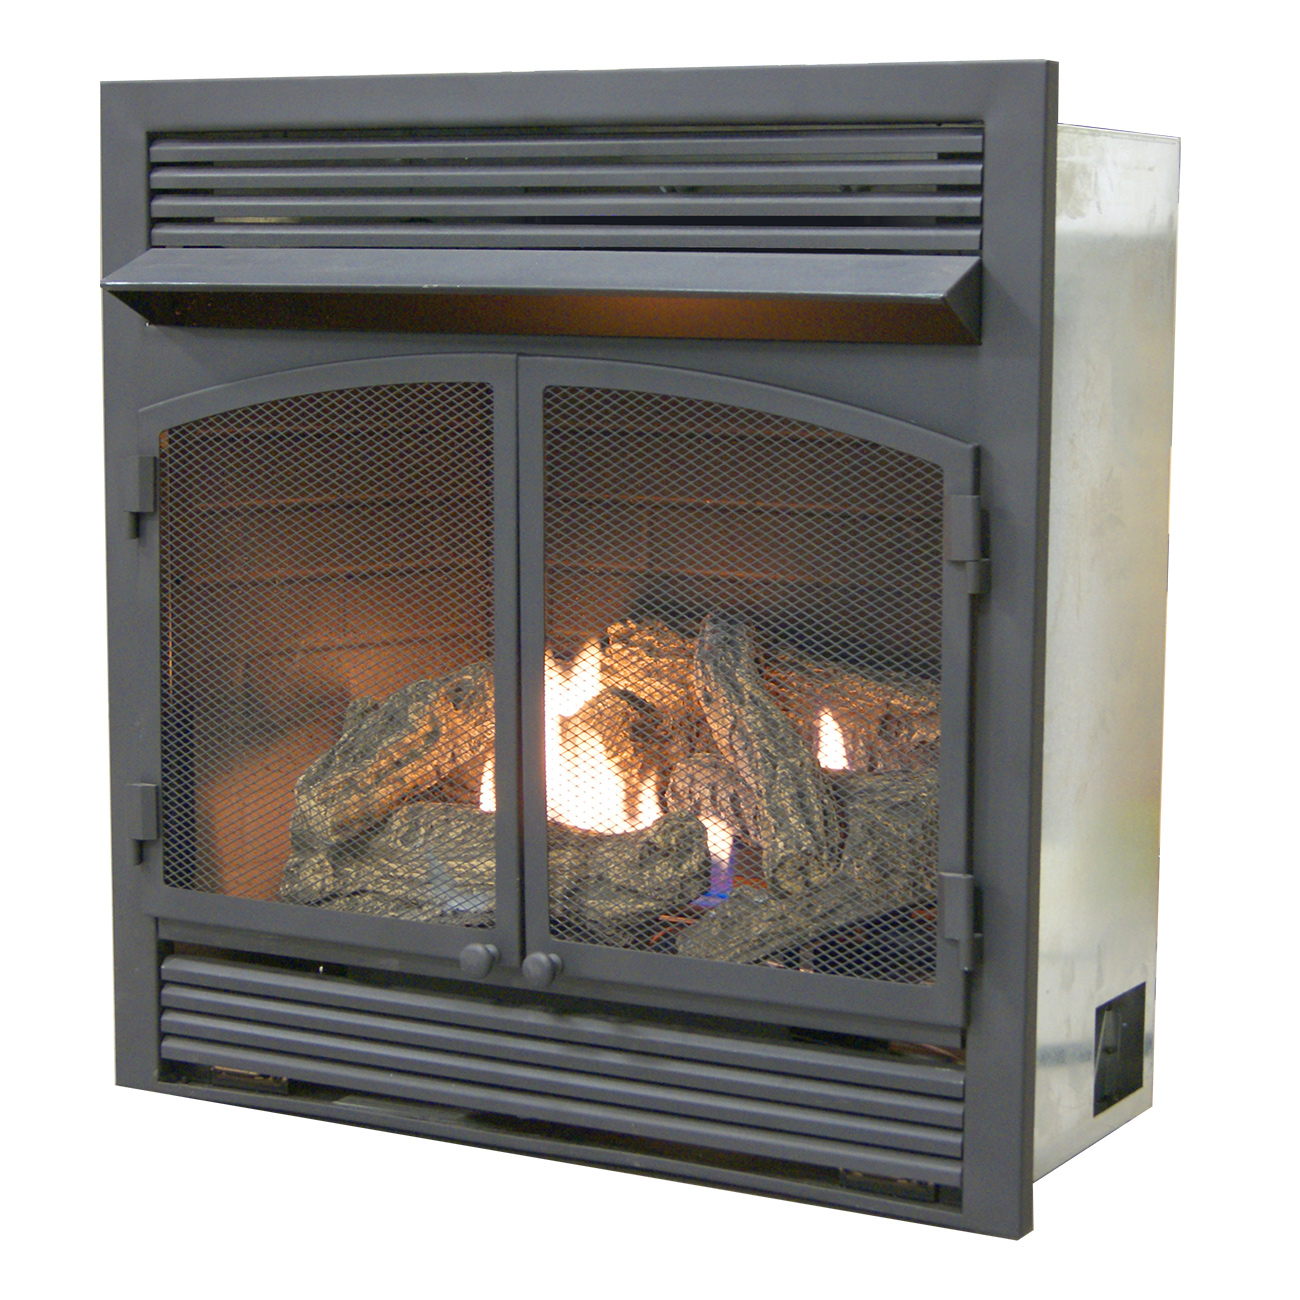 Dual Fuel Fireplace Insert Zero Clearance With Remote